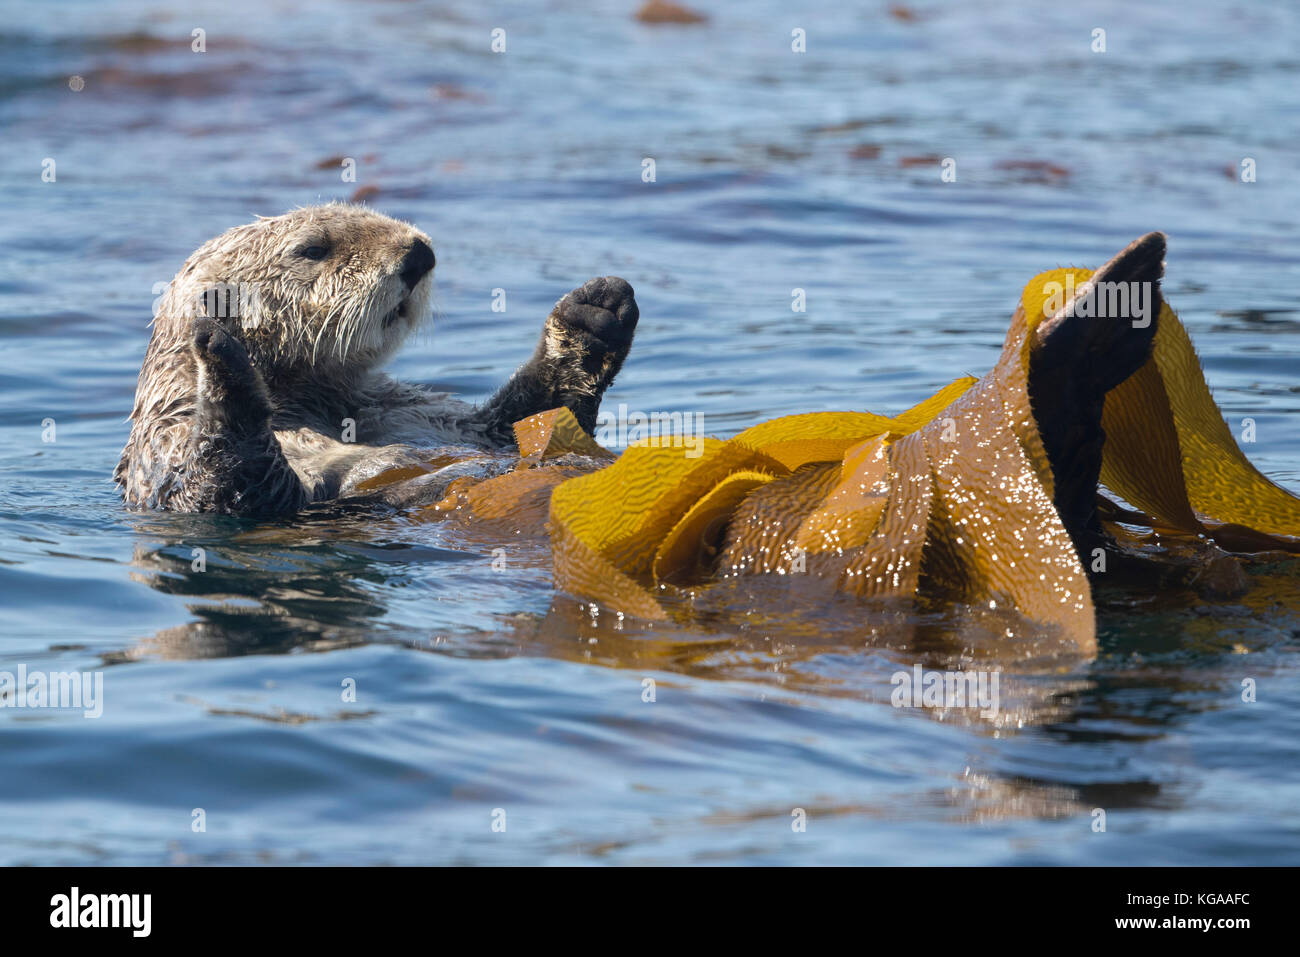 Sea Otter rolling in kelp, Alaska - Stock Image